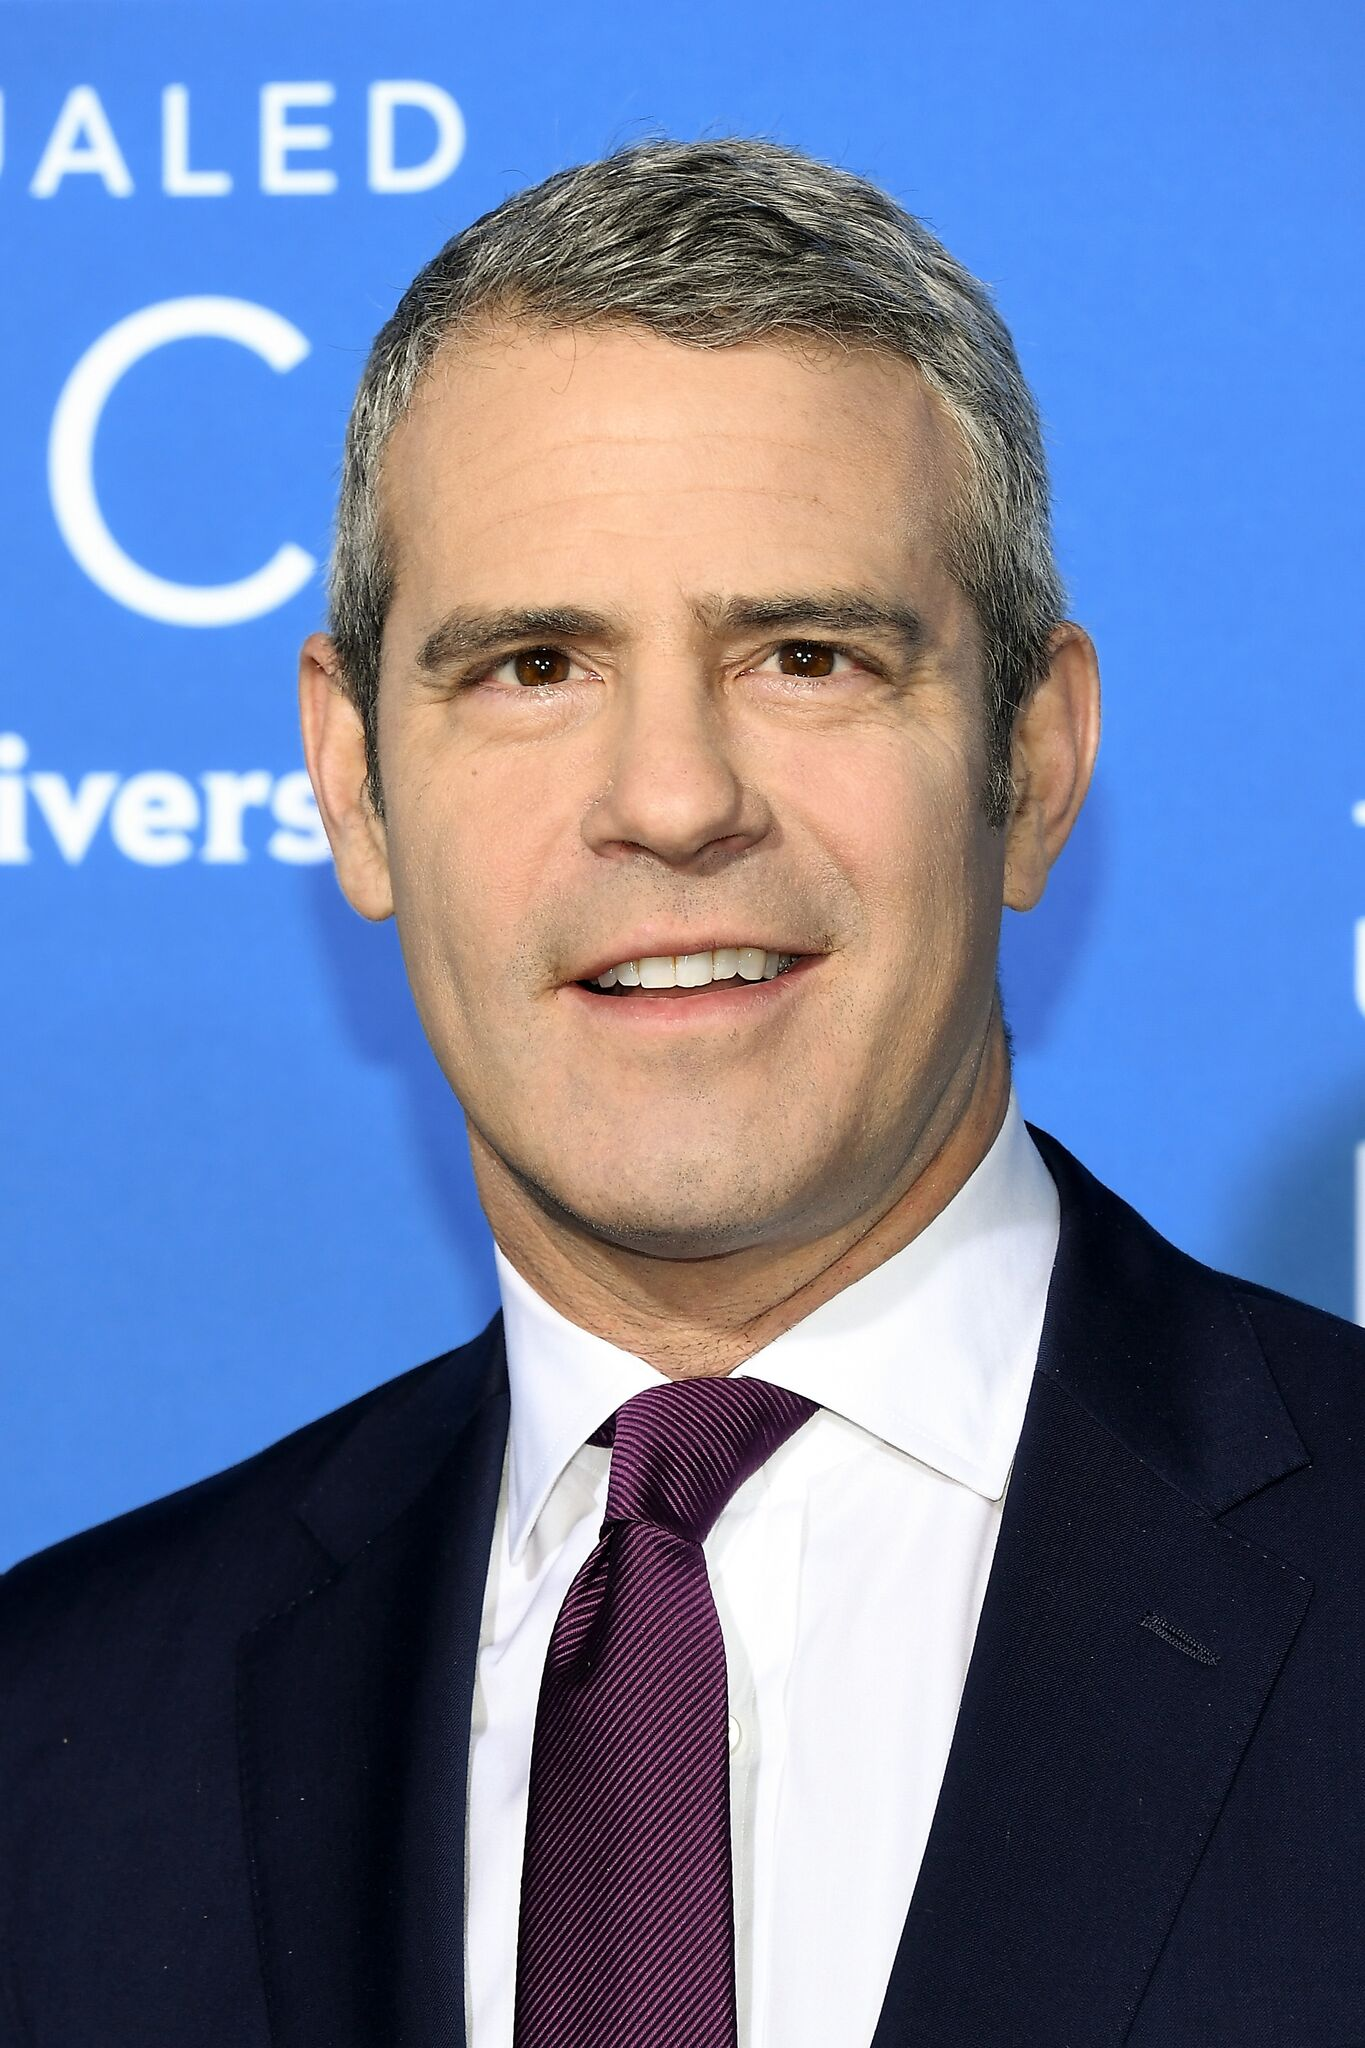 Andy Cohen poses for press photo | Getty Images